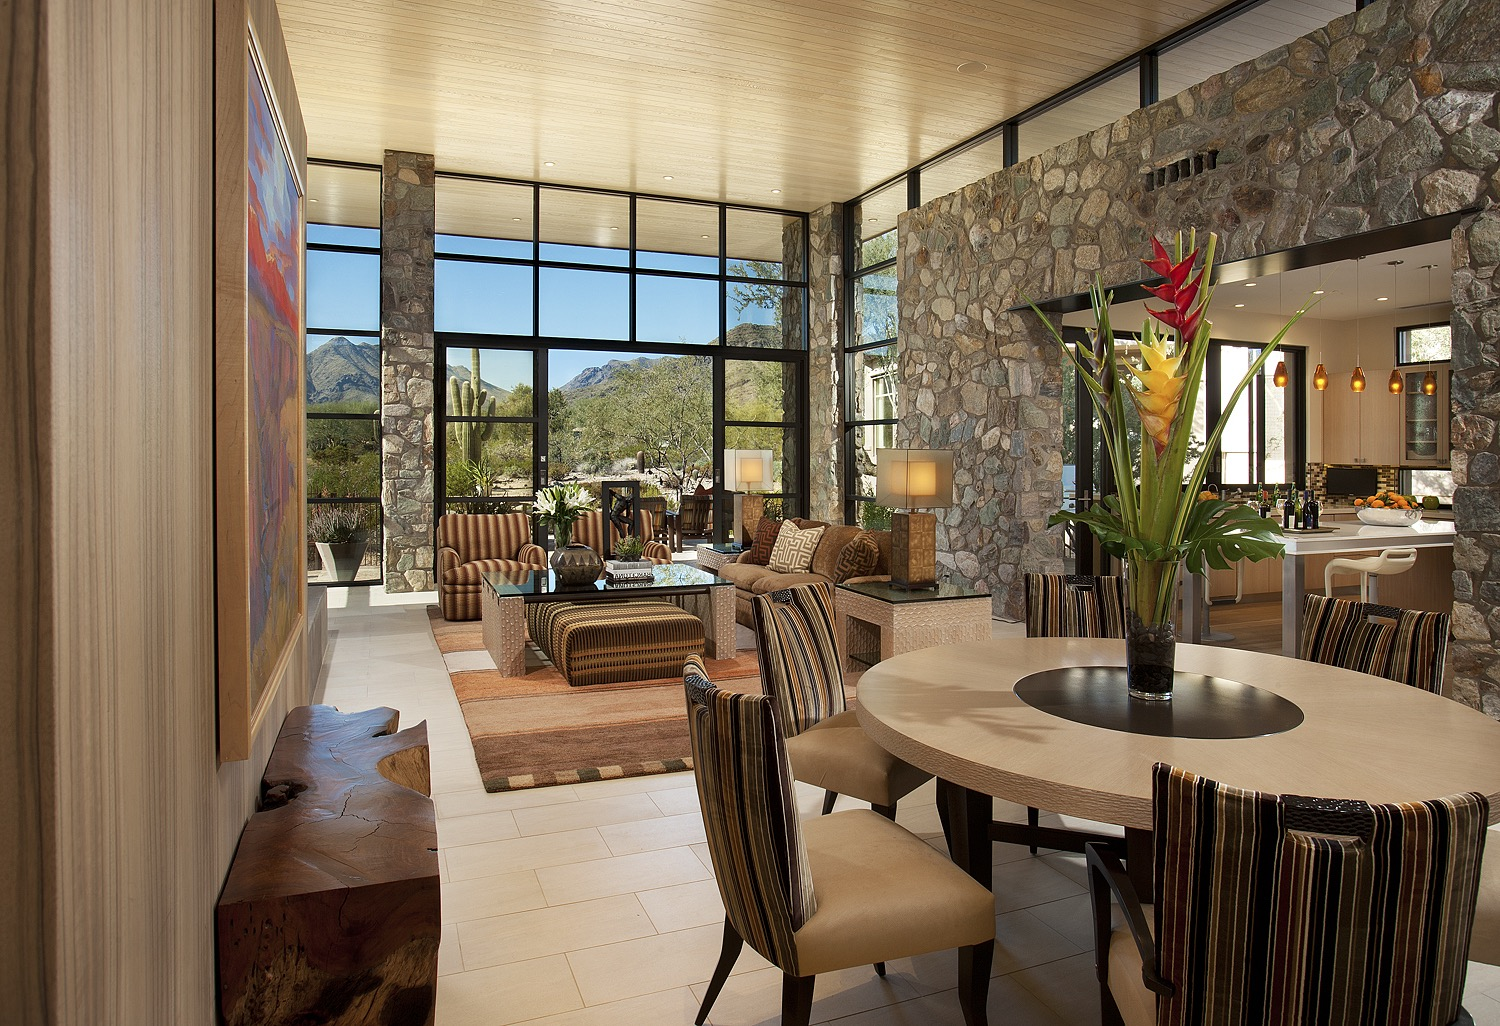 Sunny Southwestern Living Room And Dining Room Combo With Stone Accents (Image 12 of 18)